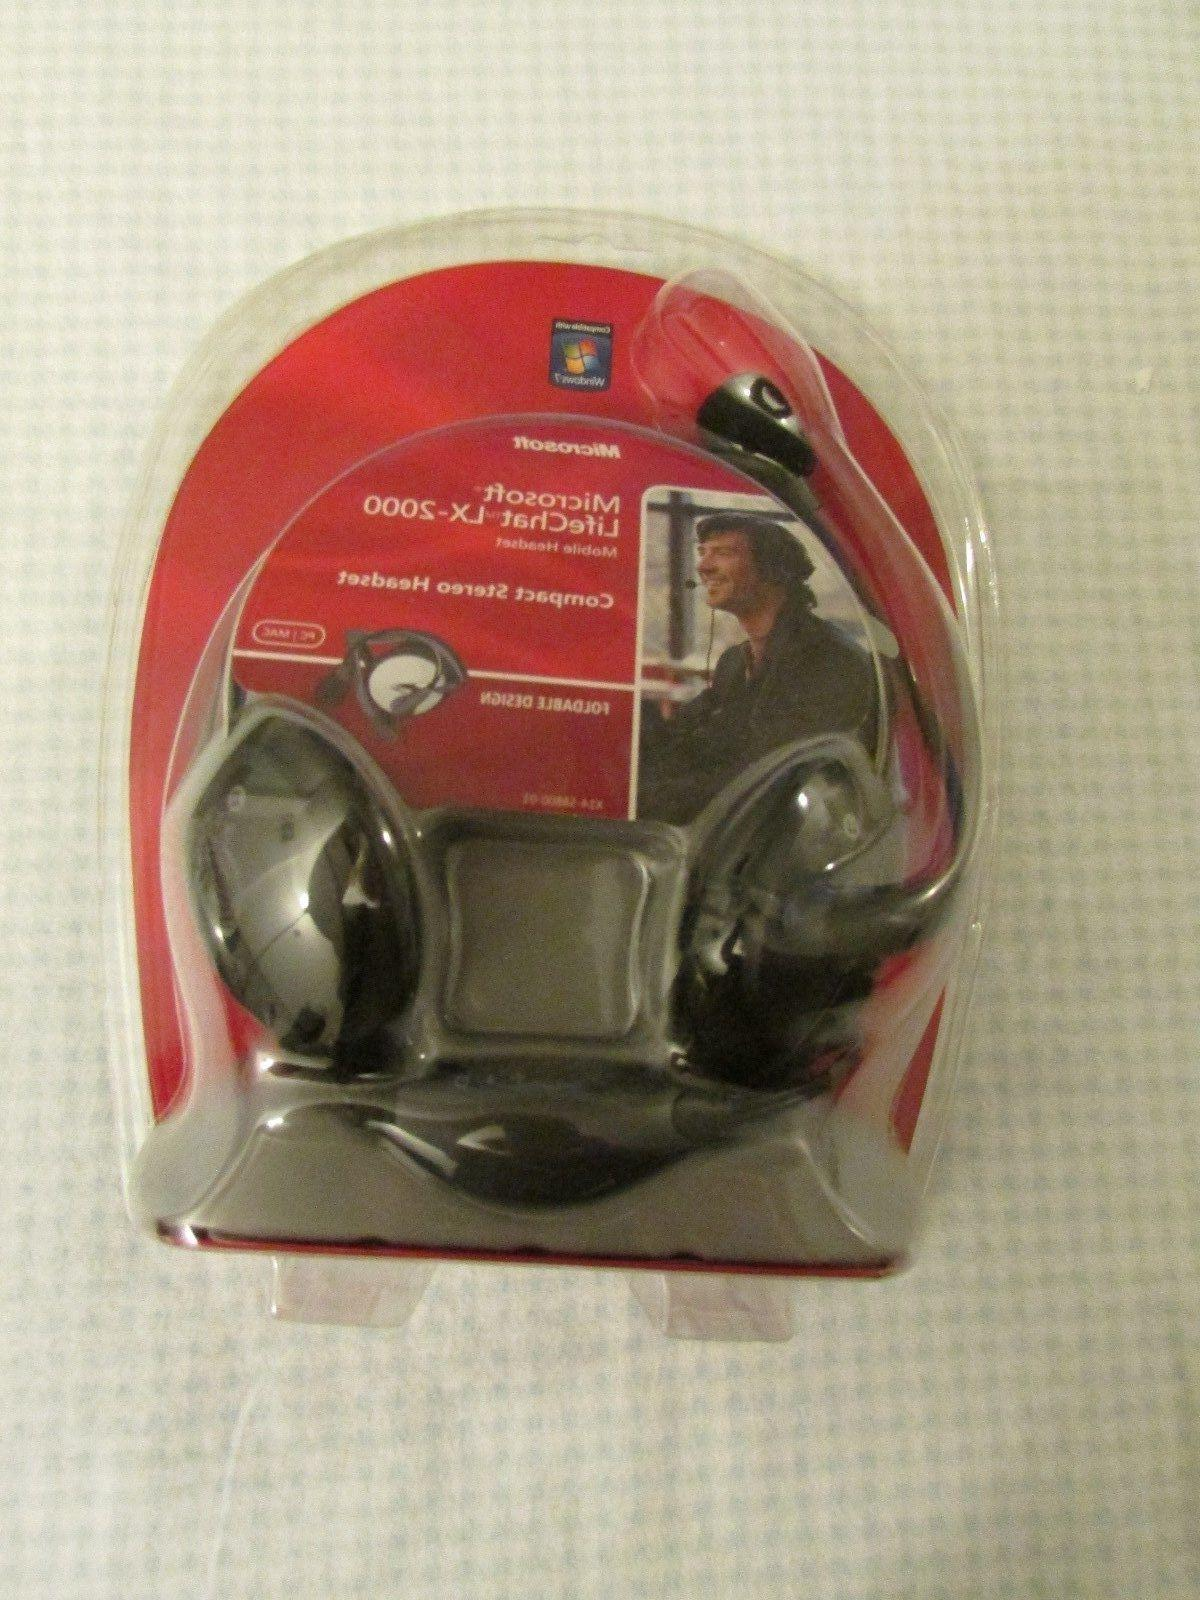 lifechat lx 2000 compact stereo headset foldable